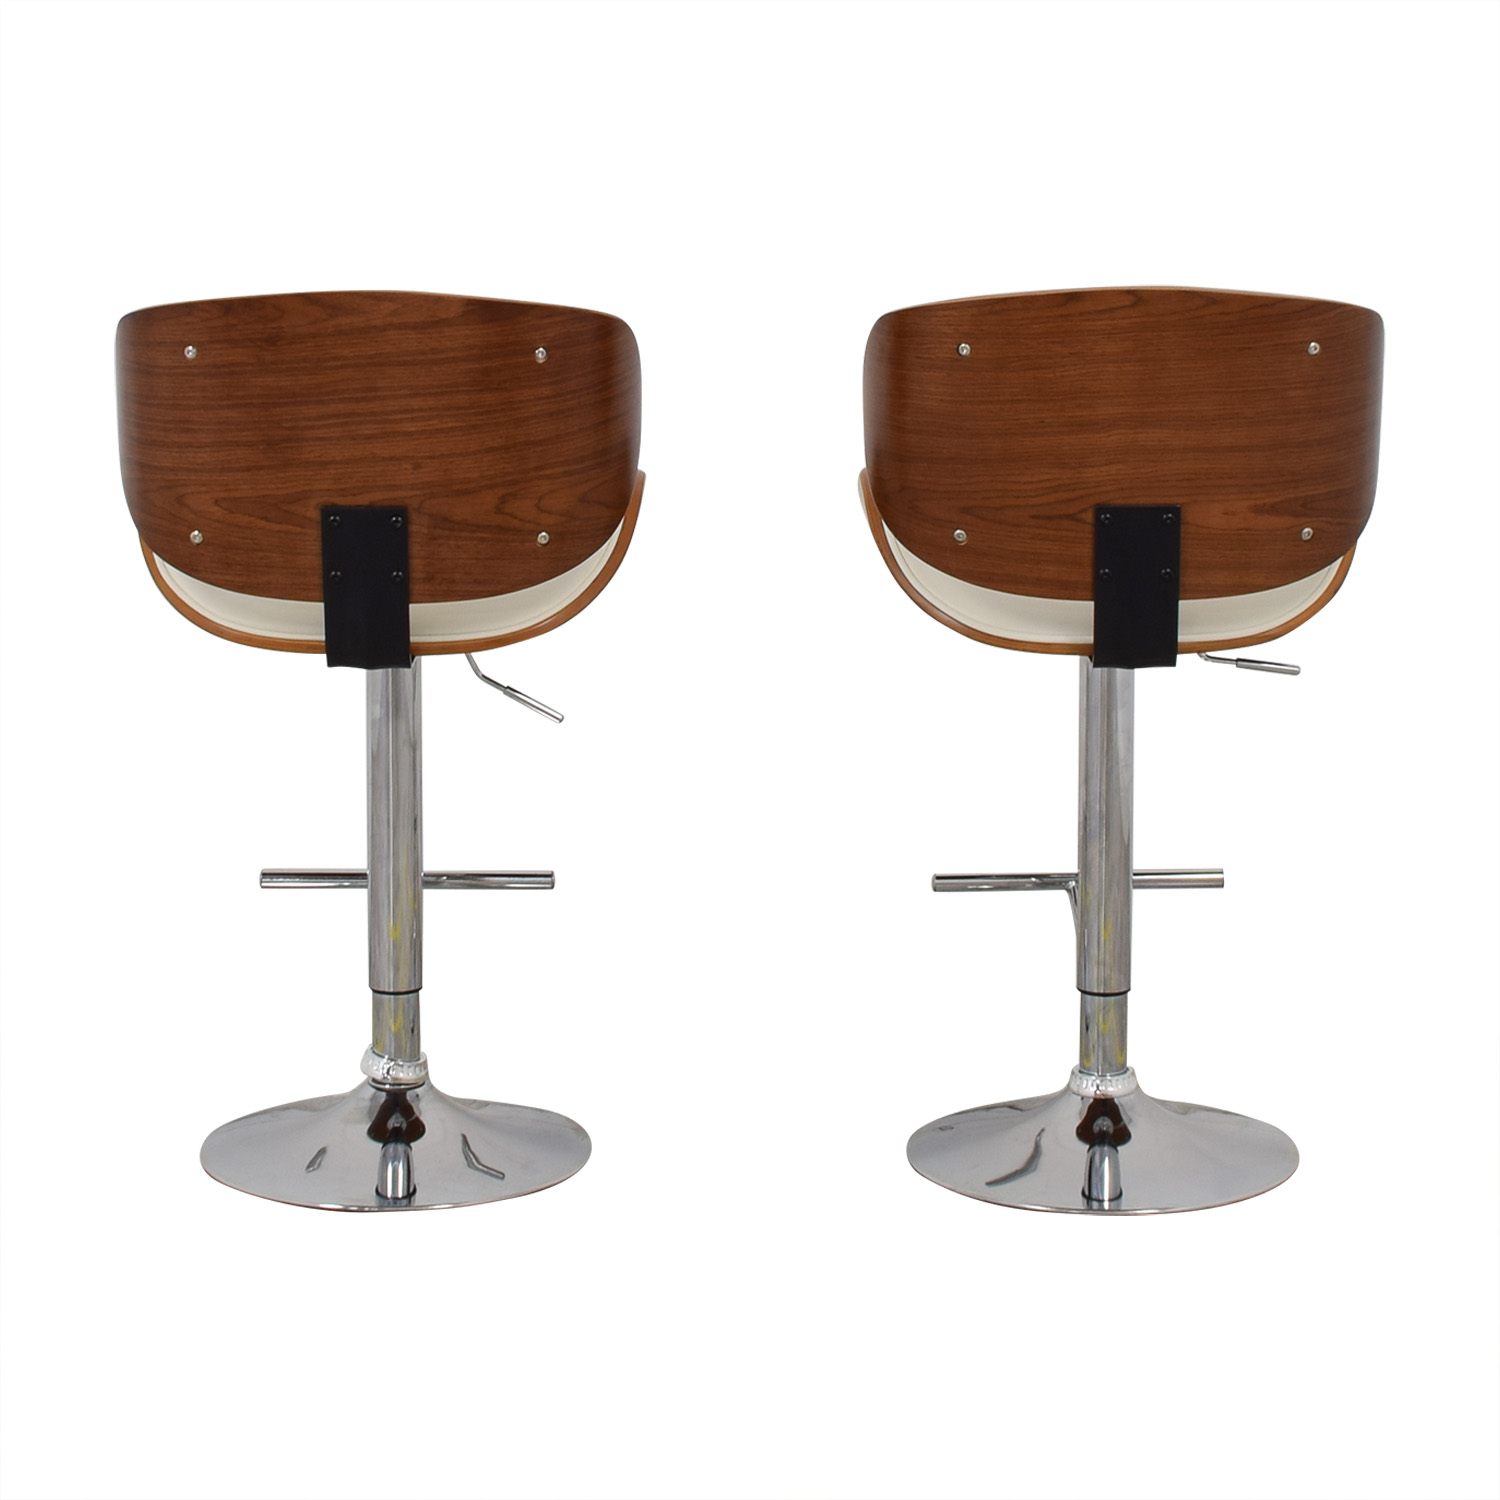 shop Raymour & Flanigan Swivel Bar Stools Raymour & Flanigan Stools